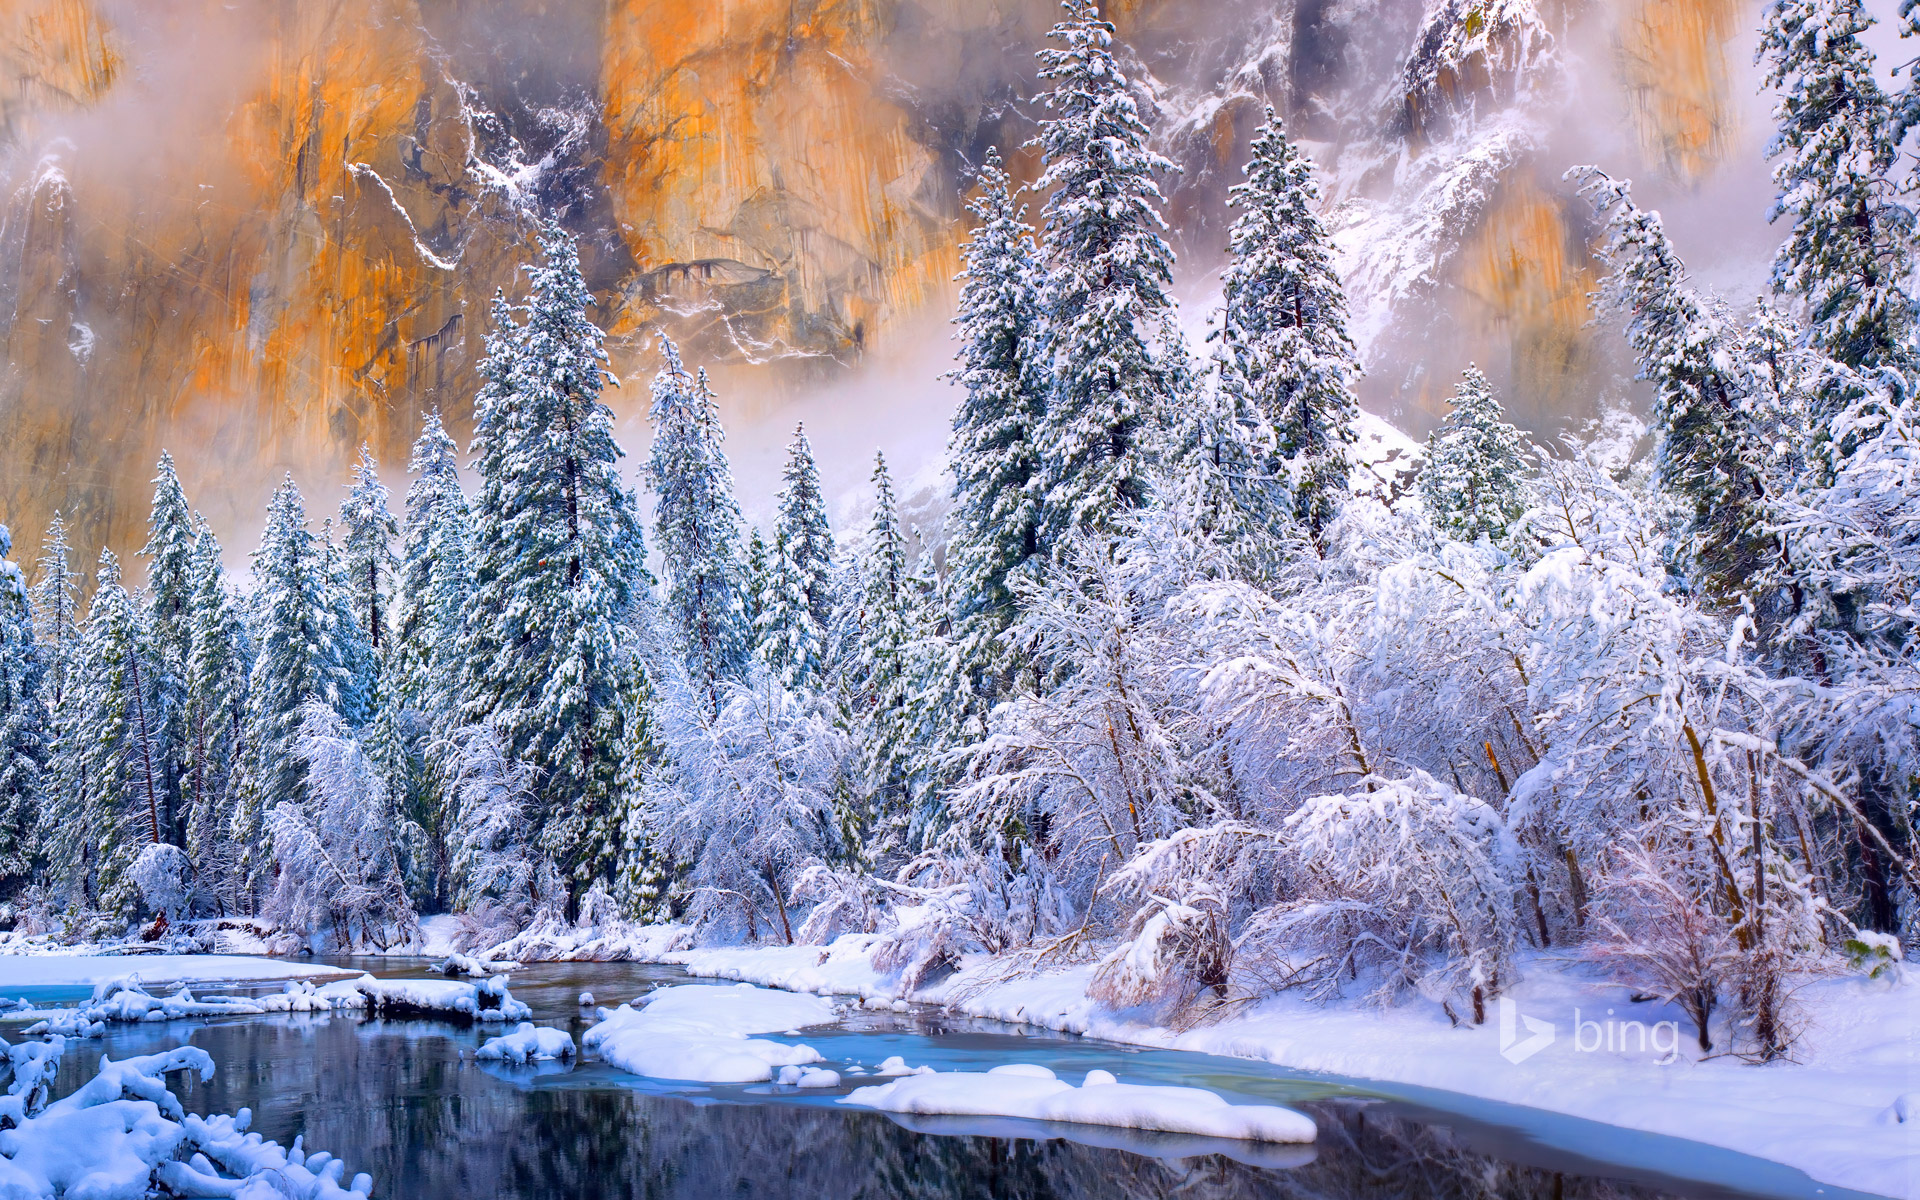 Yosemite National Park after a snow storm, California